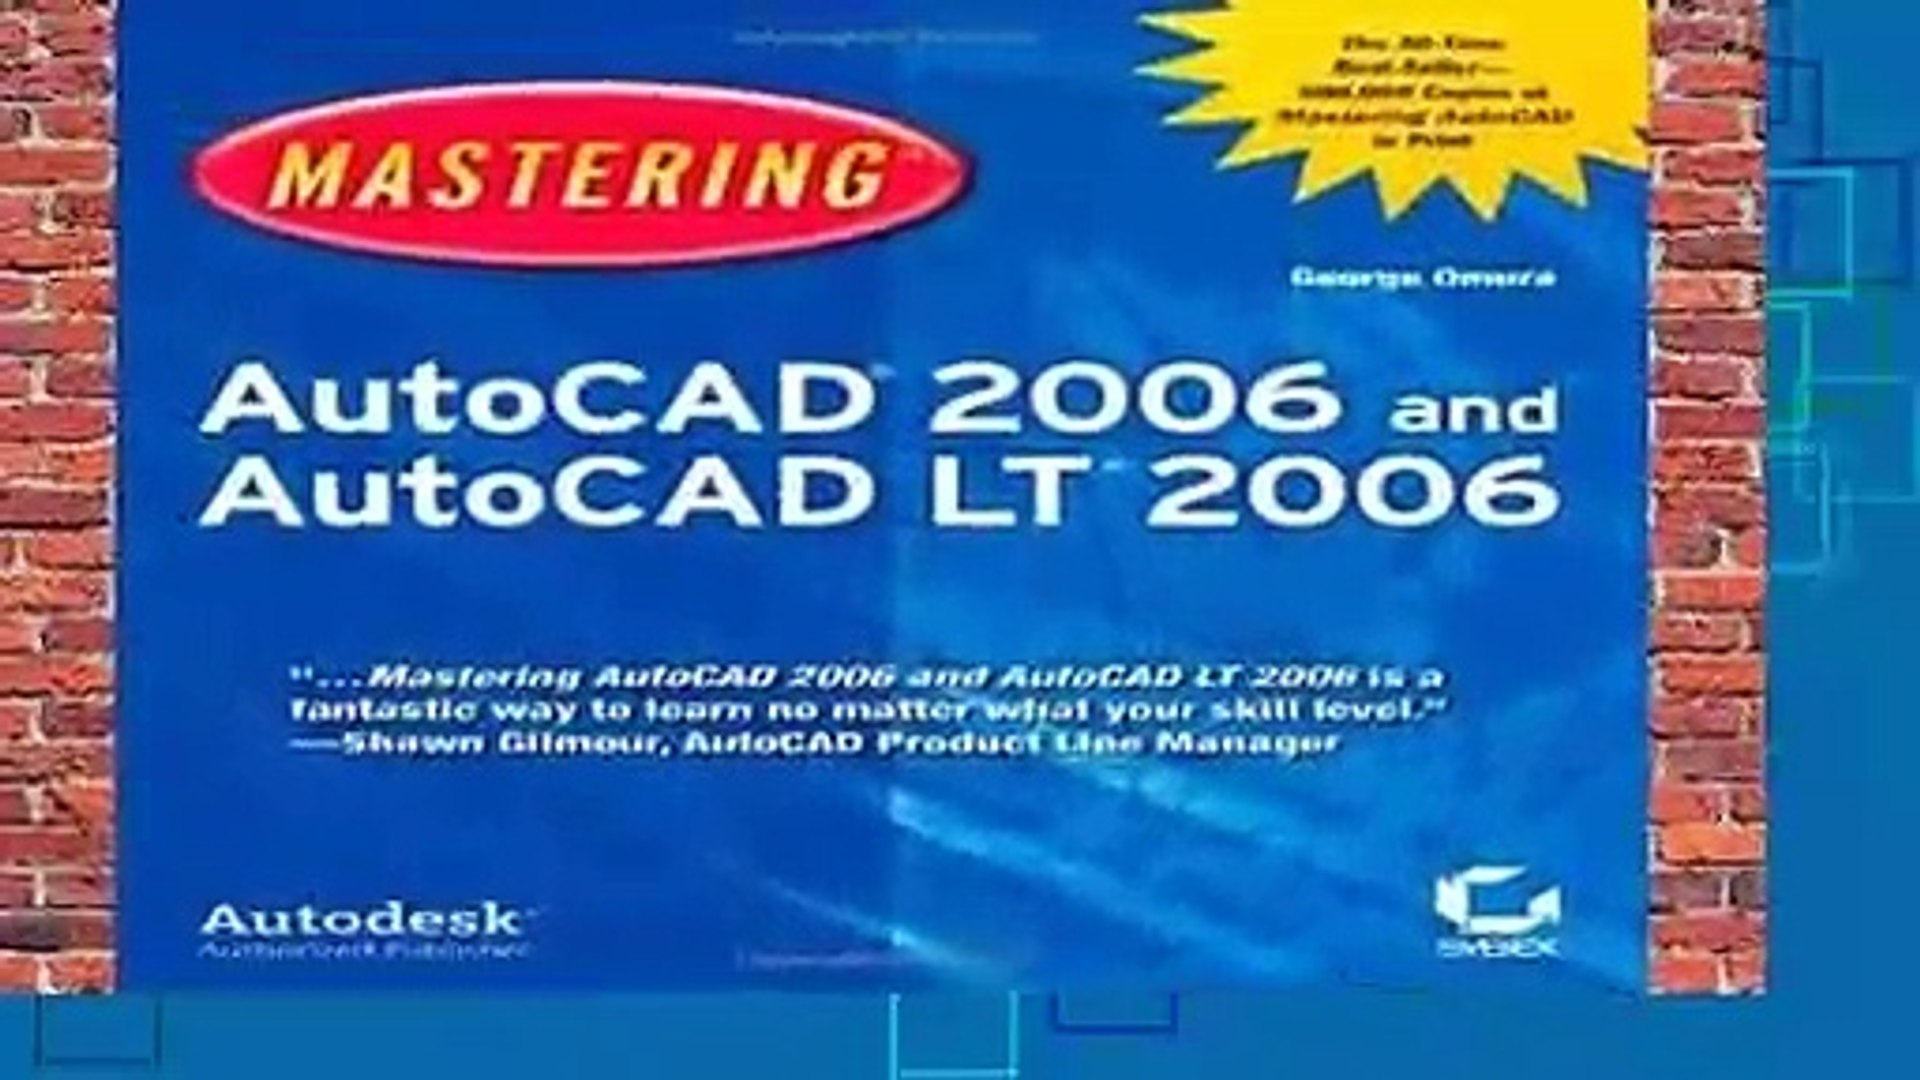 Full E-book  Mastering AutoCAD 2006 and AutoCAD LT 2006  Review